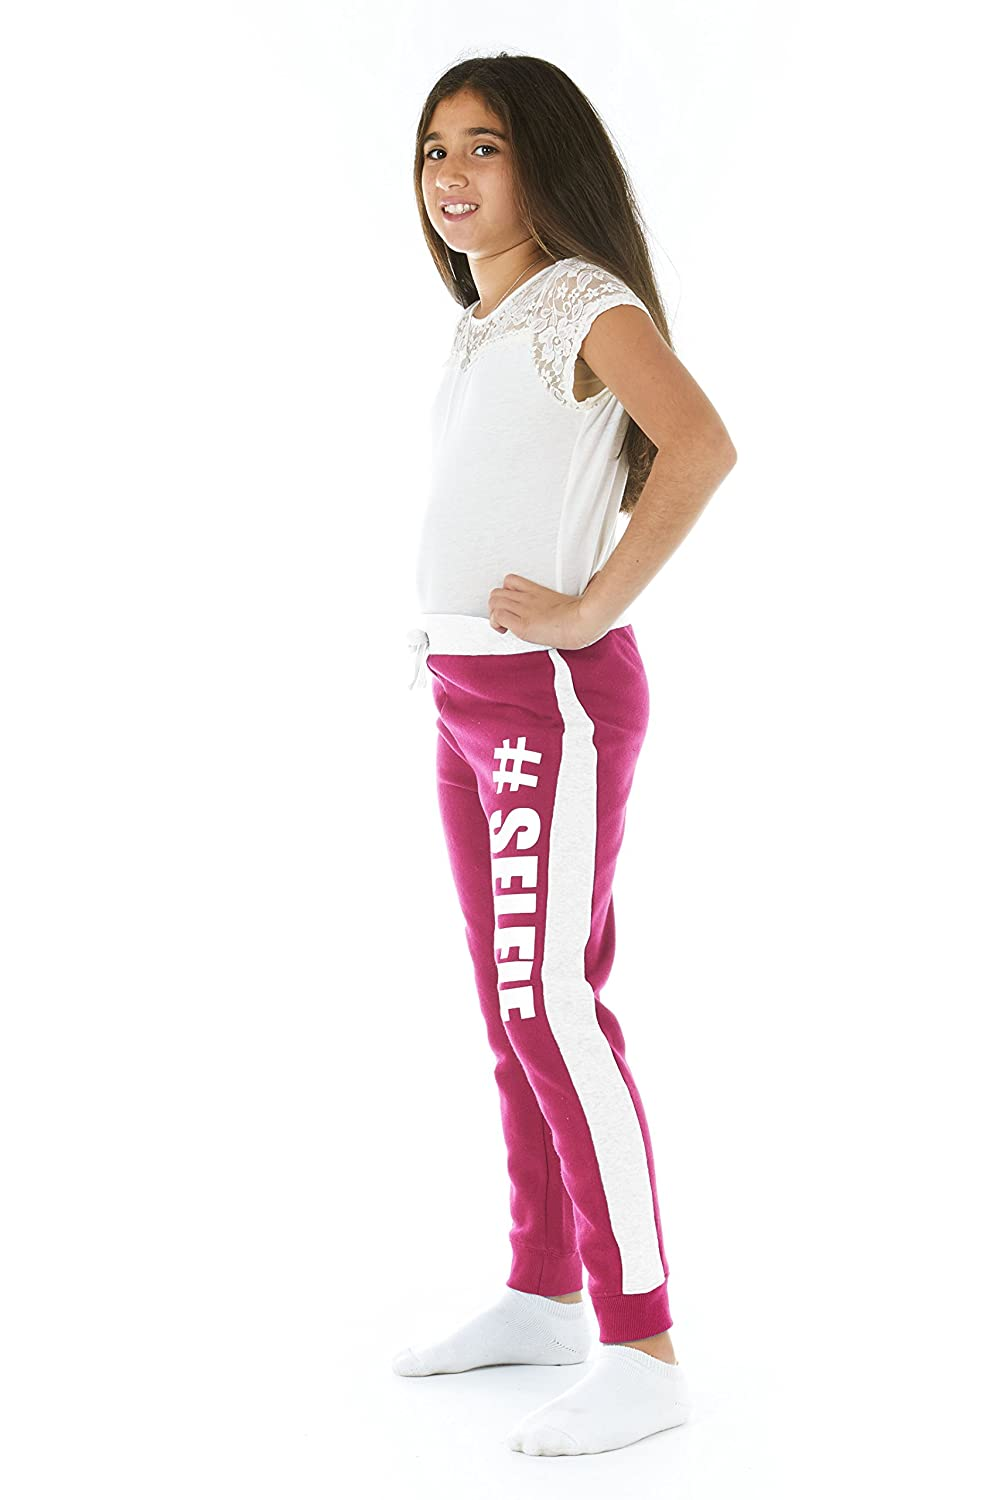 Crush Girls Brushed French Terry Printed Jogger Sweatpants (See More Styles) CGCSBFTPJF16-Parent